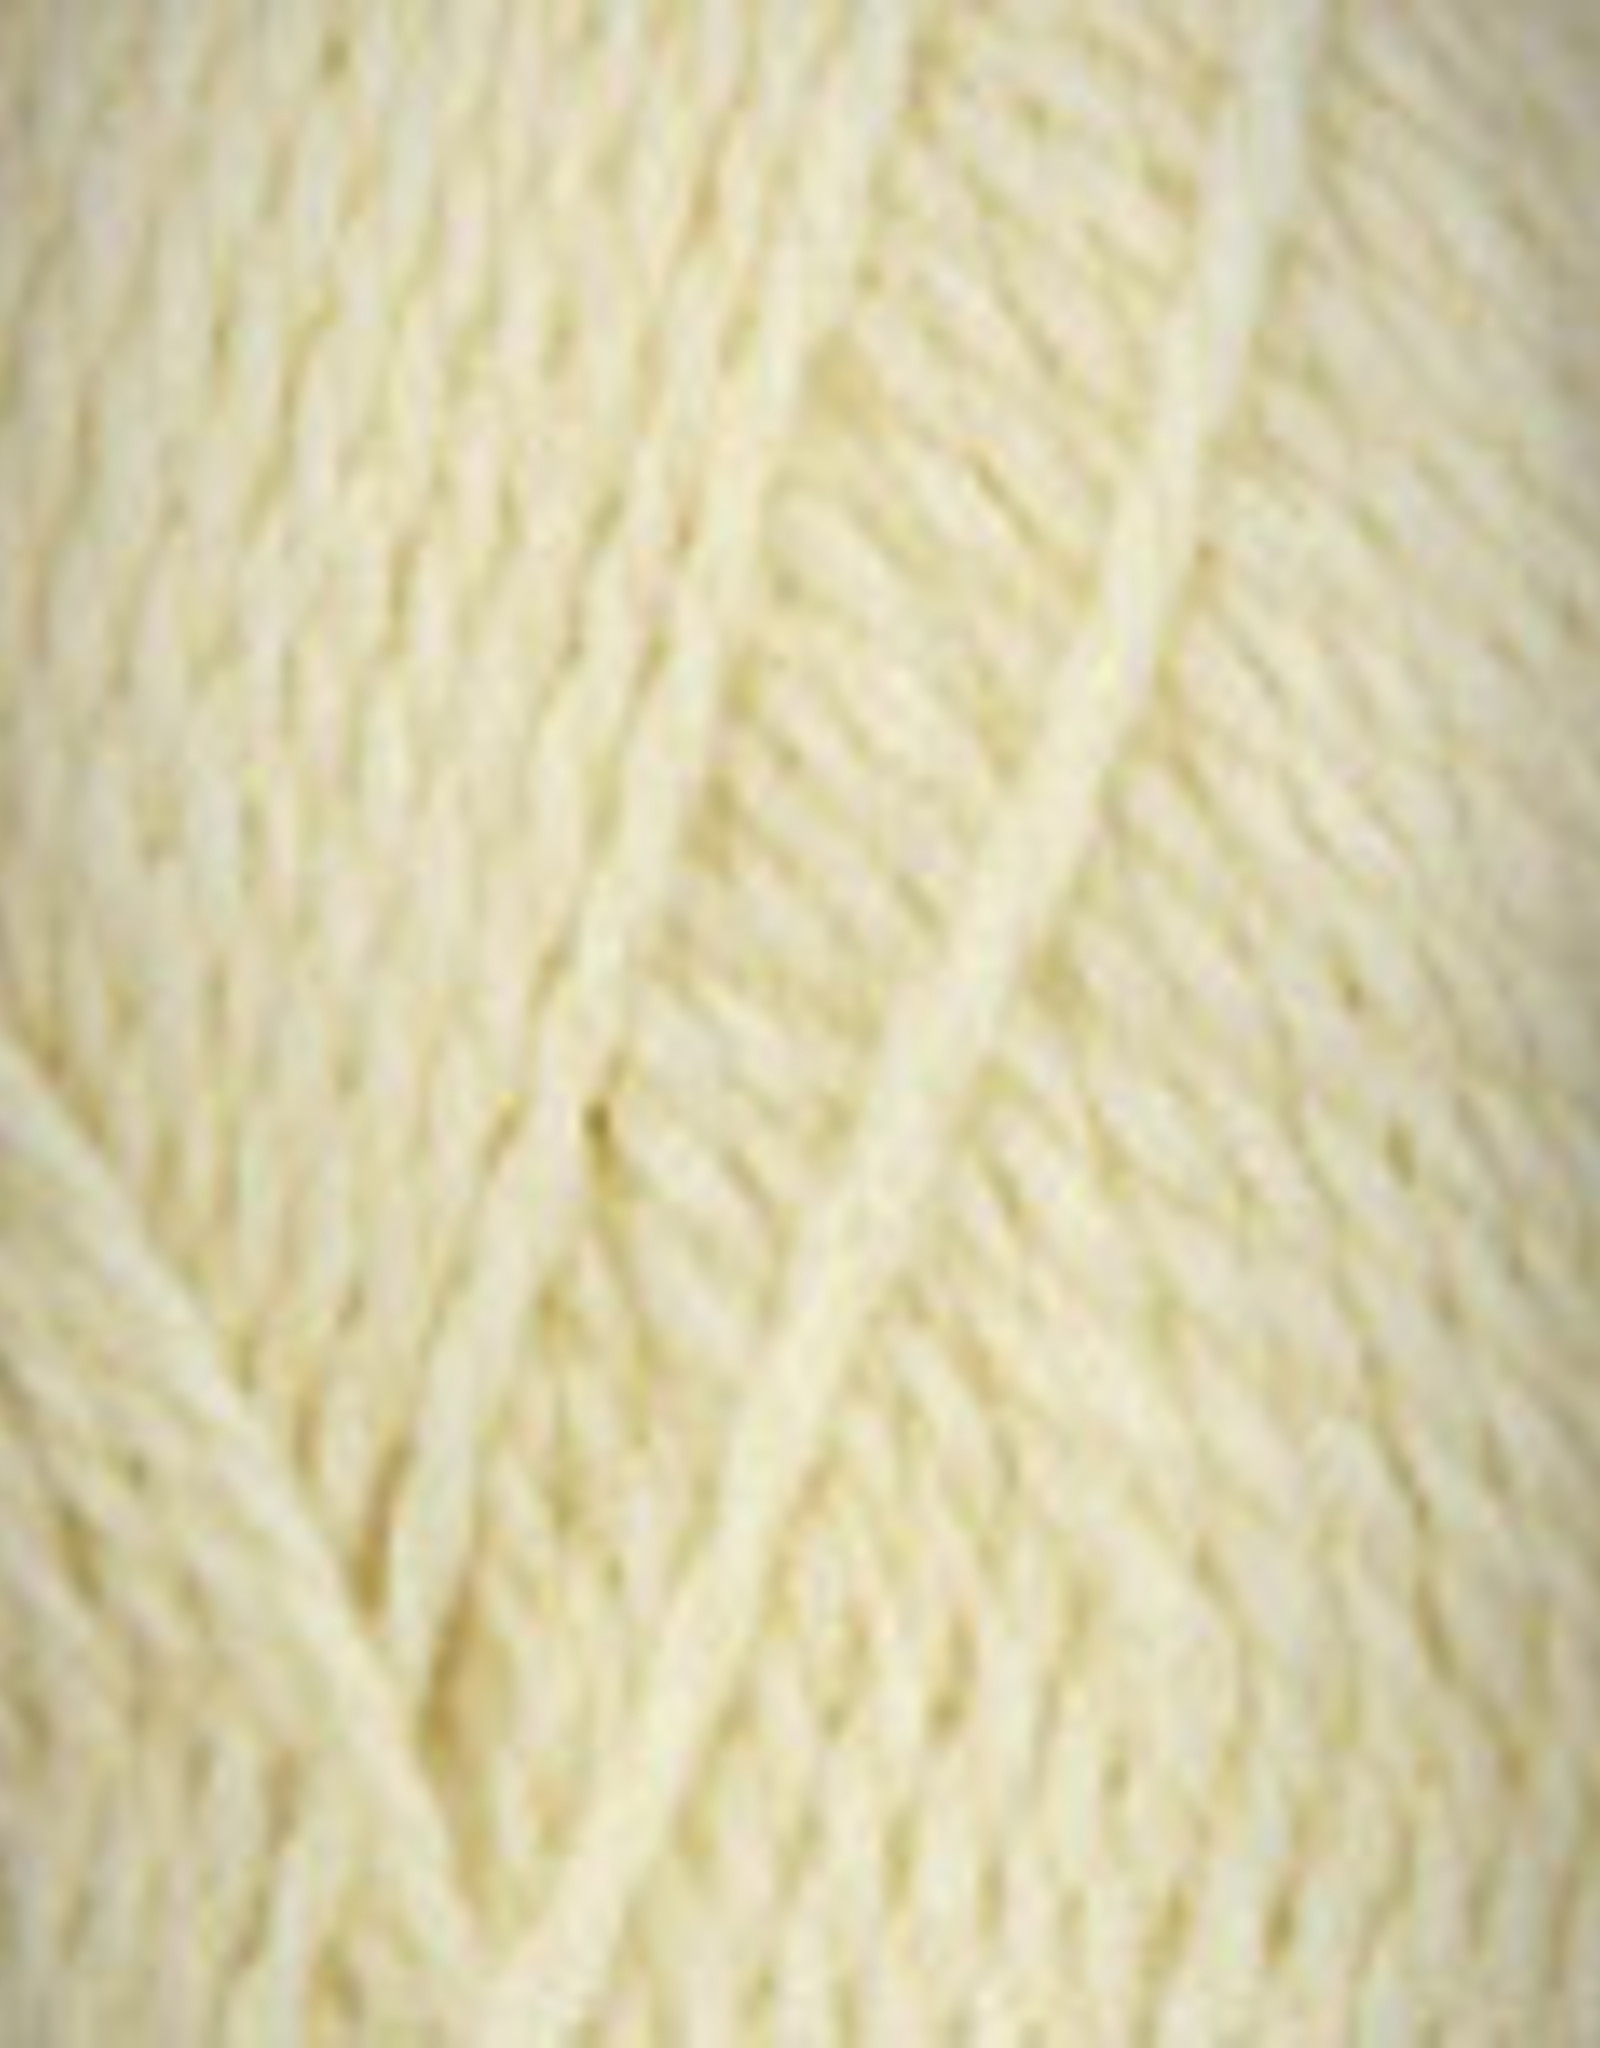 Plymouth Yarns Galway Sport 50g 001 natural